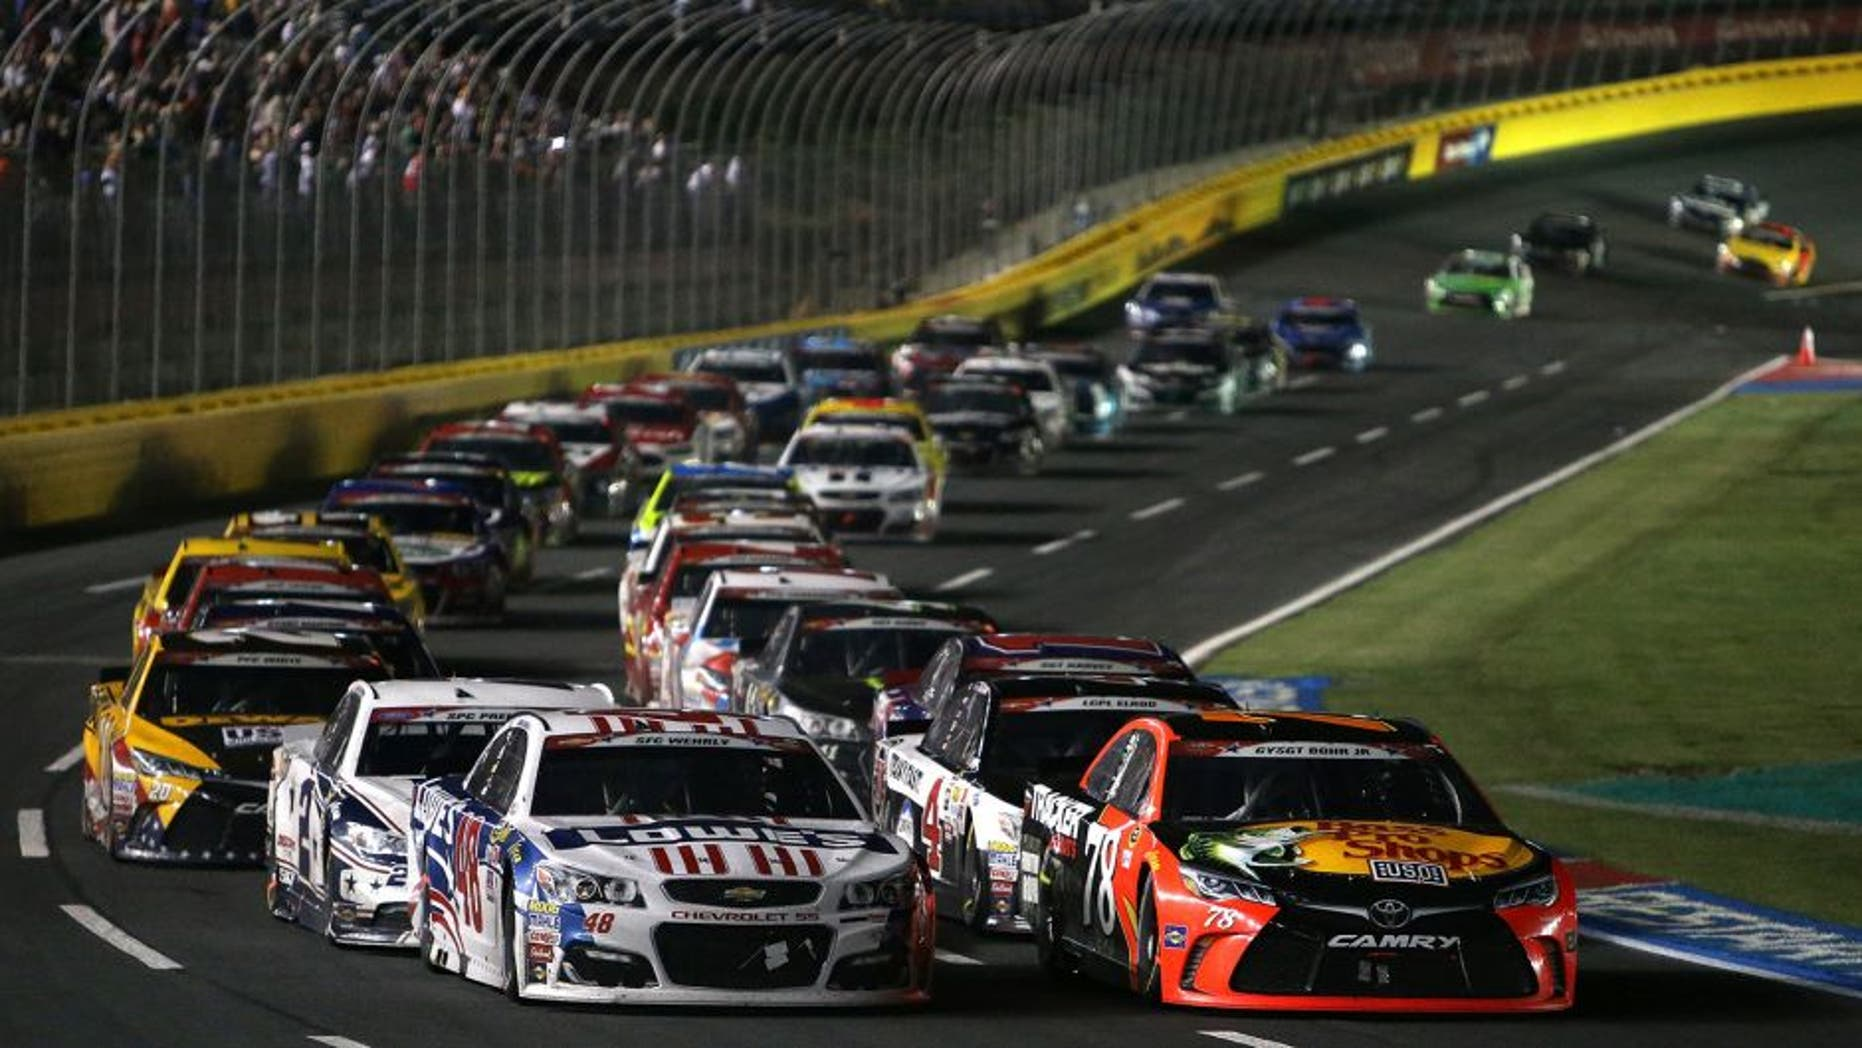 CHARLOTTE, NC - MAY 29: Martin Truex Jr., driver of the #78 Bass Pro Shops/Tracker Toyota, and Jimmie Johnson, driver of the #48 Lowe's Patriotic Chevrolet, lead a restart during the NASCAR Sprint Cup Series Coca-Cola 600 at Charlotte Motor Speedway on May 29, 2016 in Charlotte, North Carolina. (Photo by Jerry Markland/NASCAR via Getty Images)